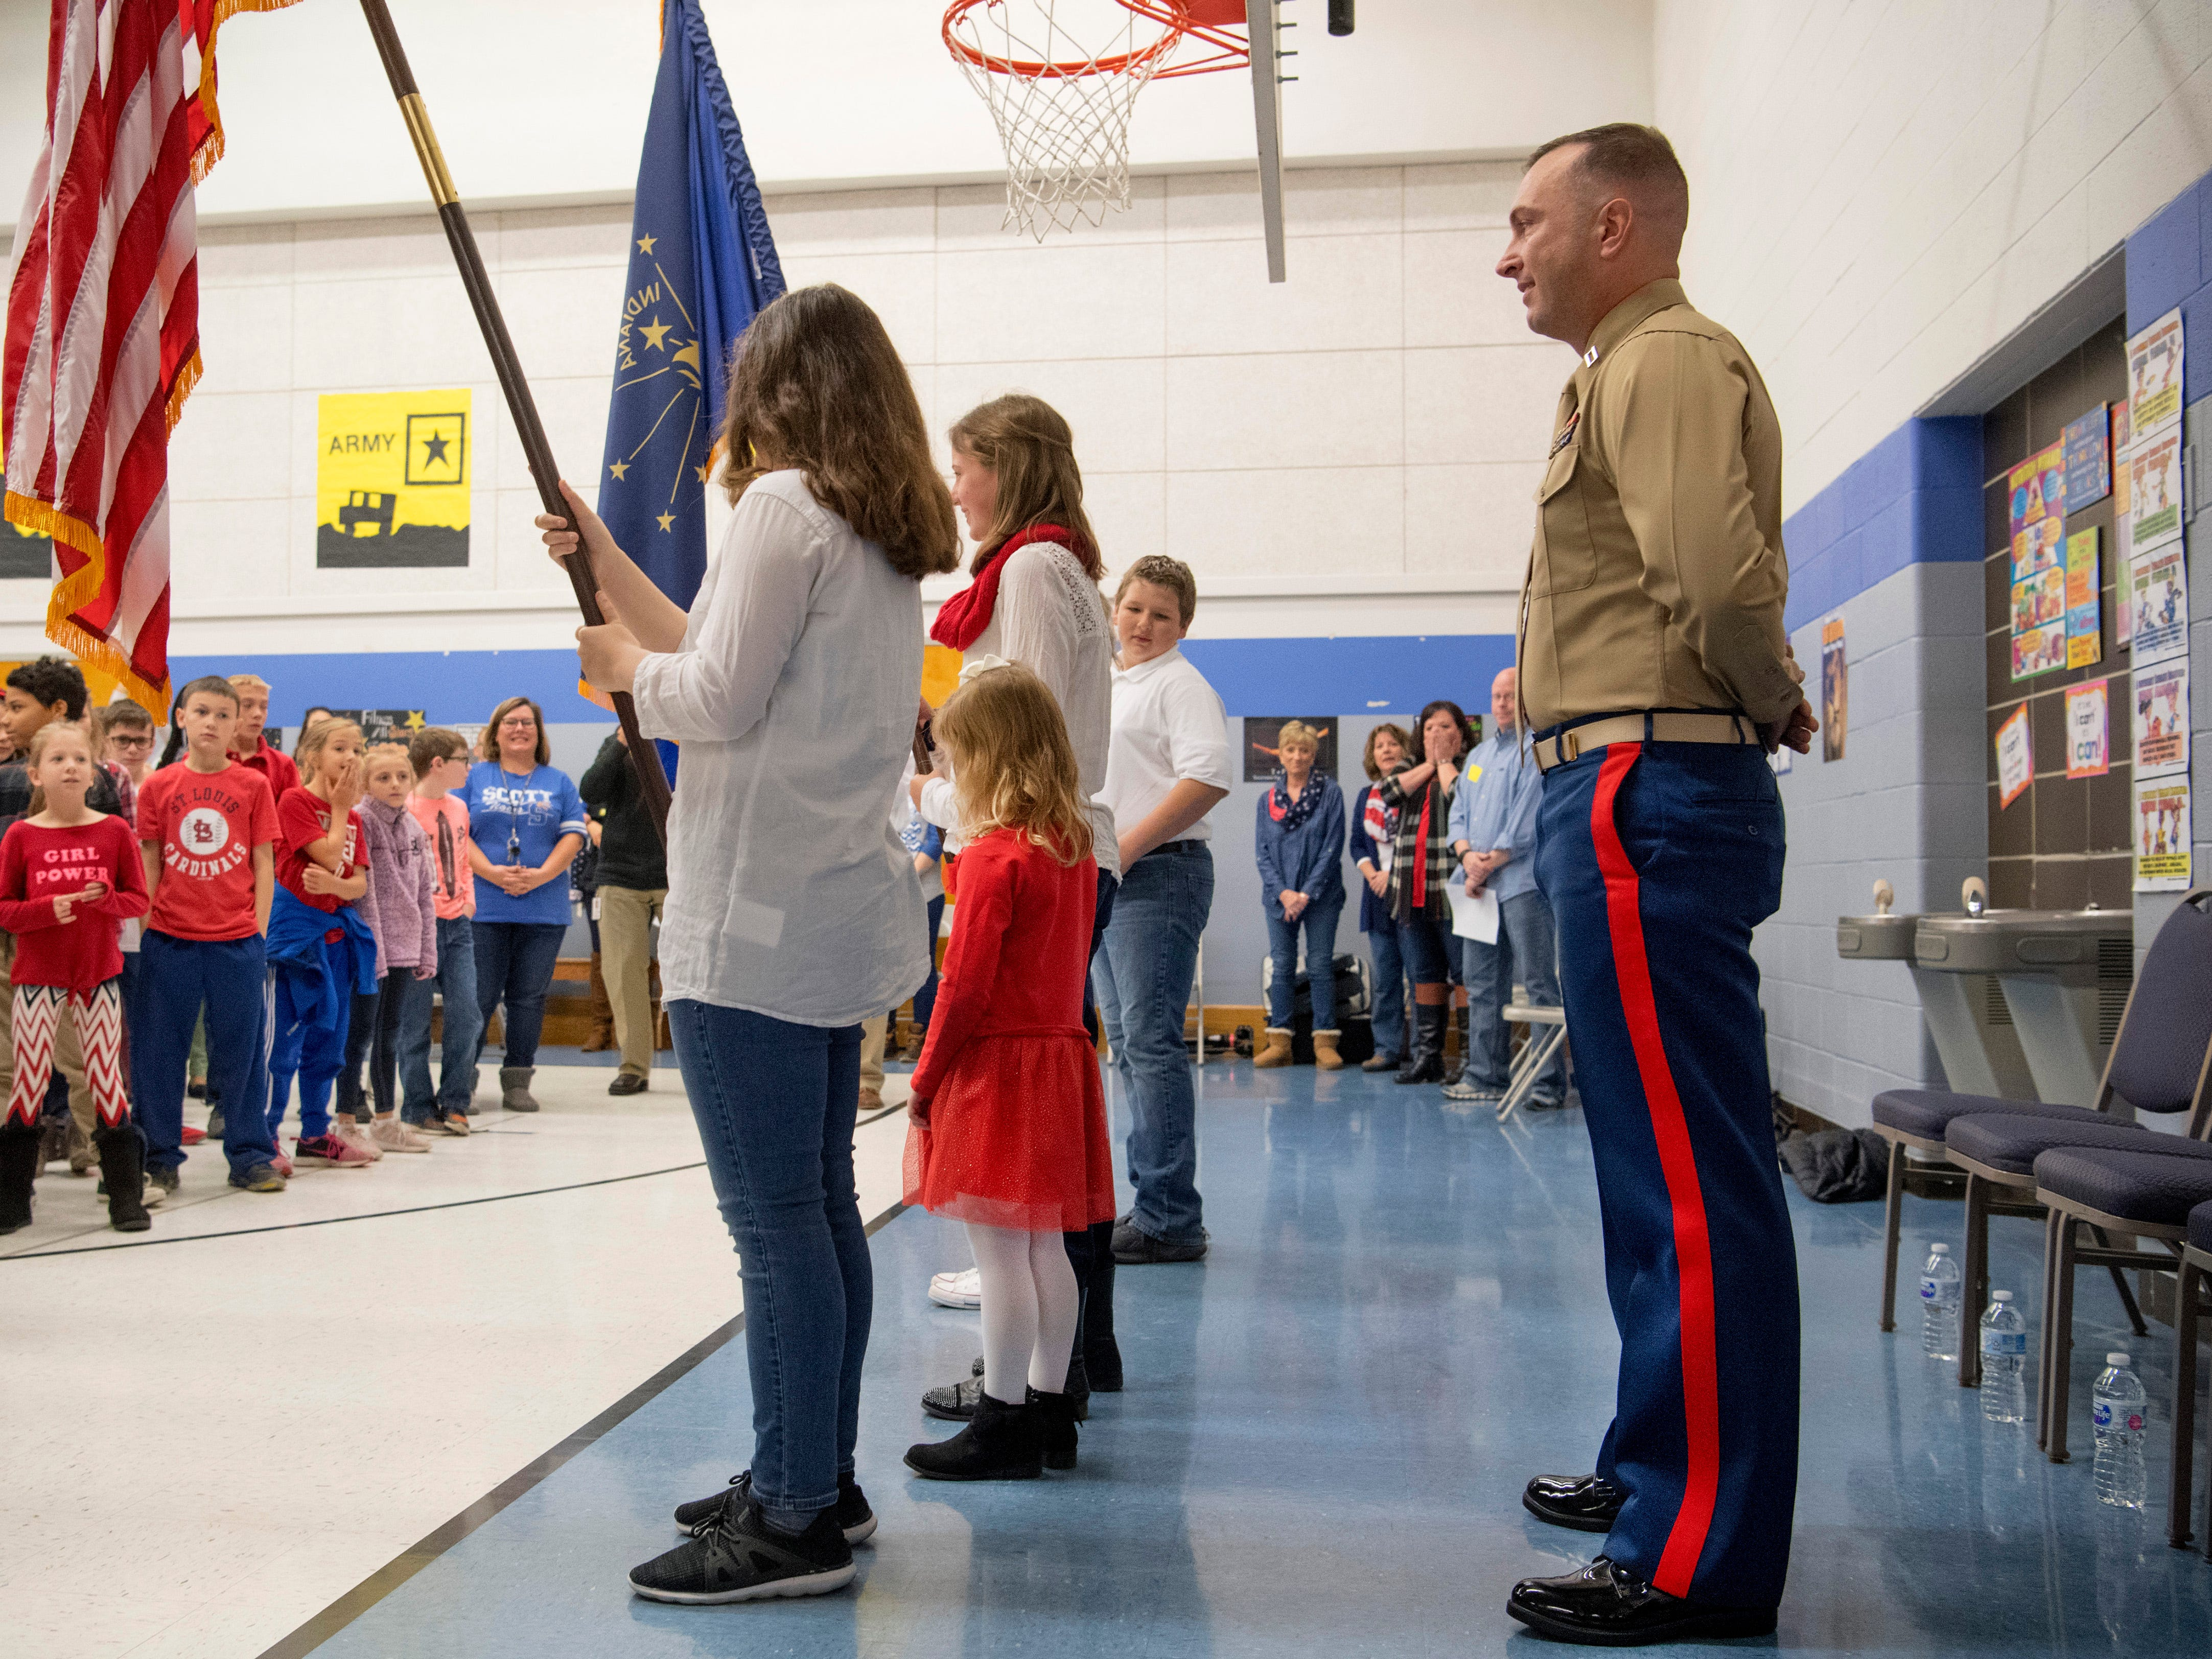 Scott Elementary School kindergartner Eliana Marzec, 5, center, is unaware of her father, Marine Corps Capt. Ryan Marzec, standing at parade rest during the Veterans Day program Friday morning. Captain Marzec returned from a tour in Afghanistan and surprised the eldest of his three daughters.